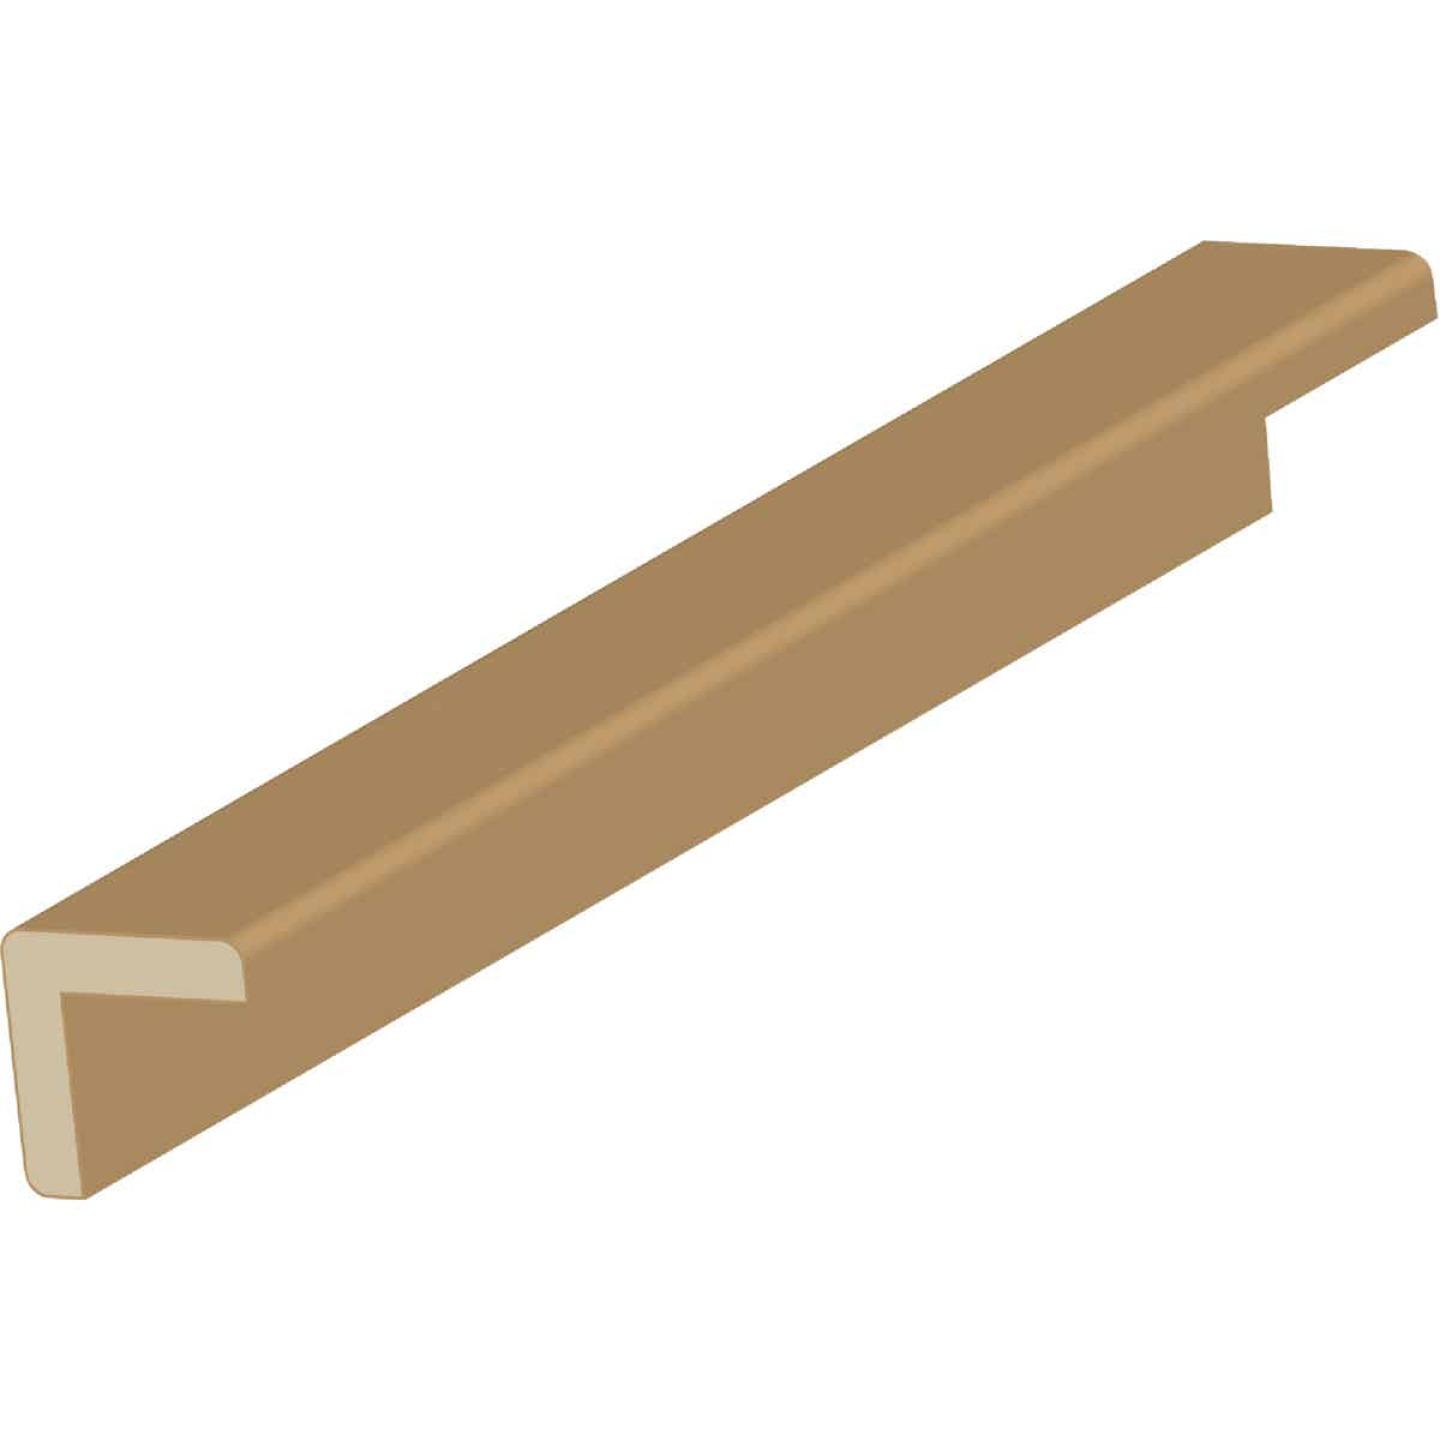 Cedar Creek WM205 1-1/8 In. x 1-1/8 In. x 8 Ft. Solid Pine Outside Corner Molding Image 1